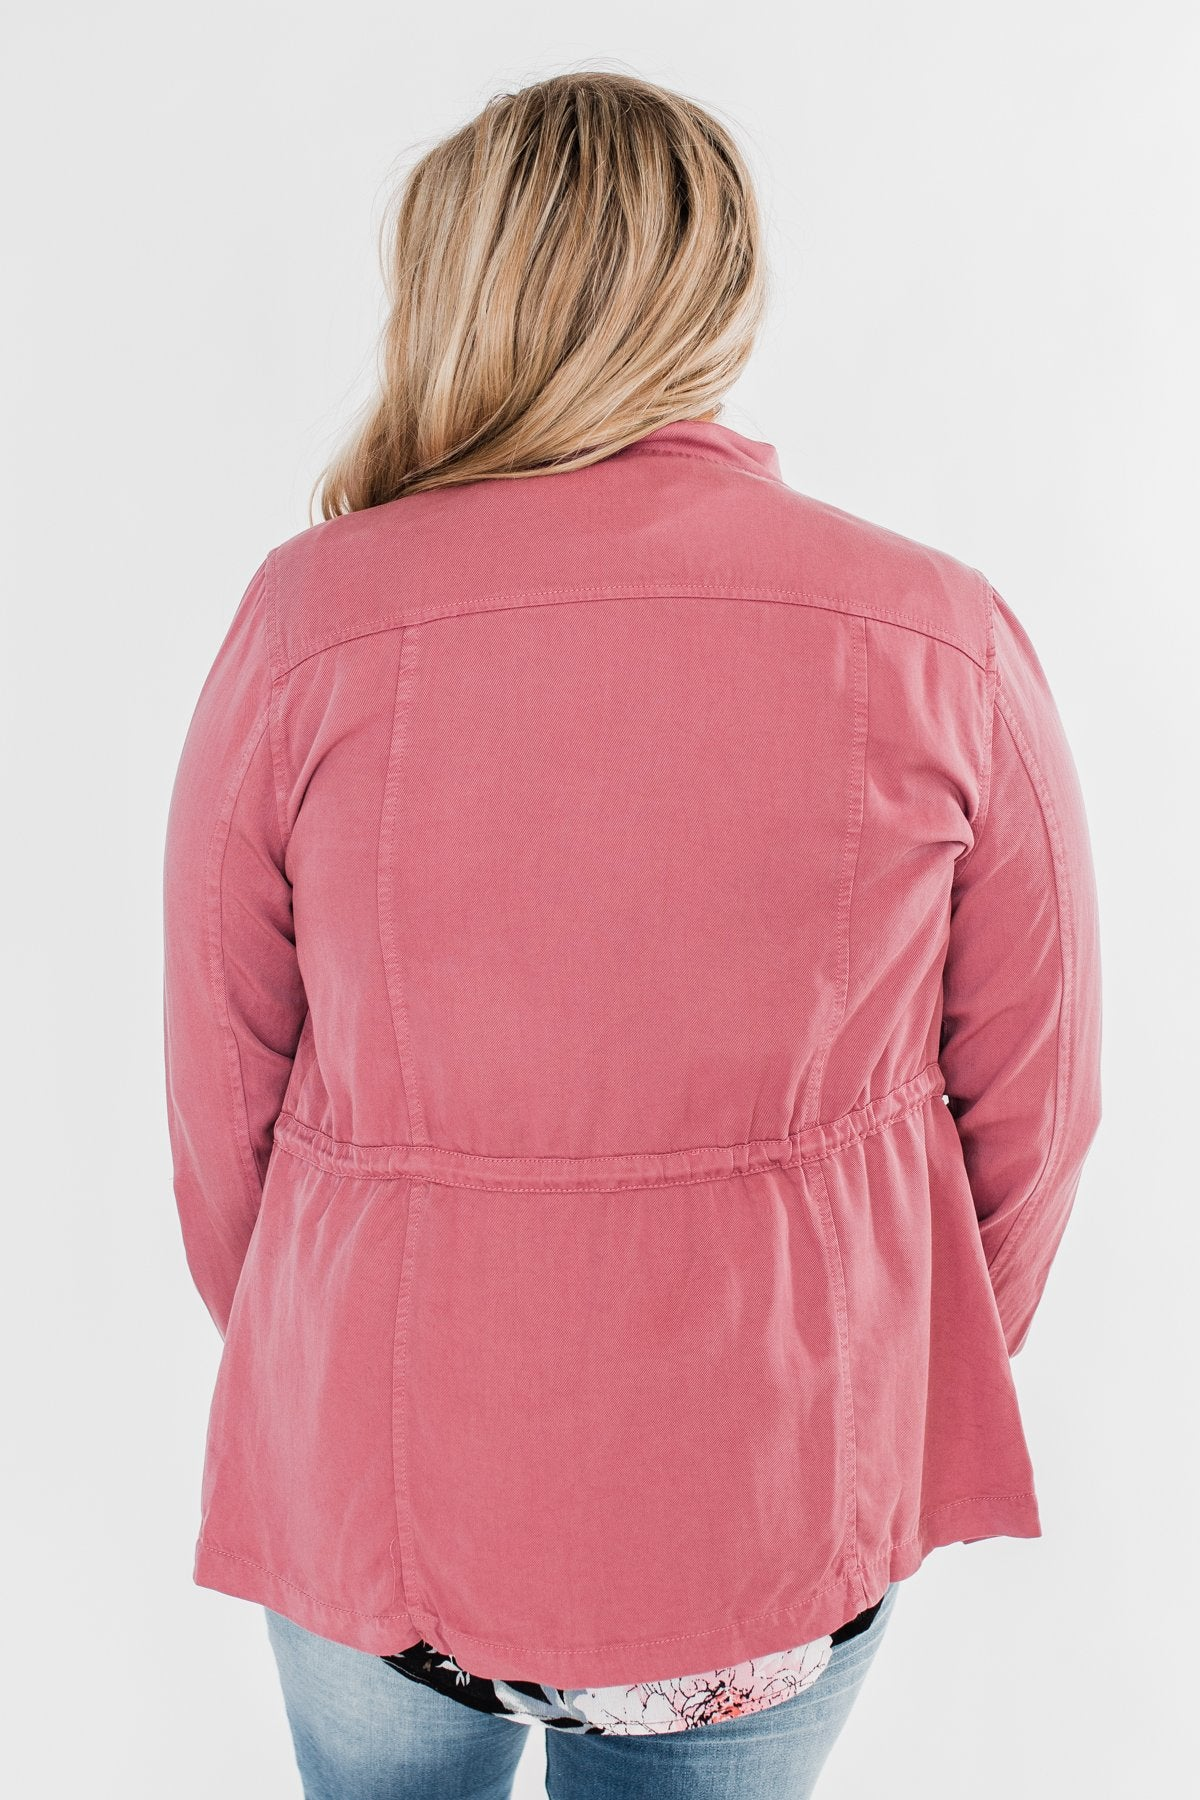 Carried Away Drawstring Waist Jacket- Mauve